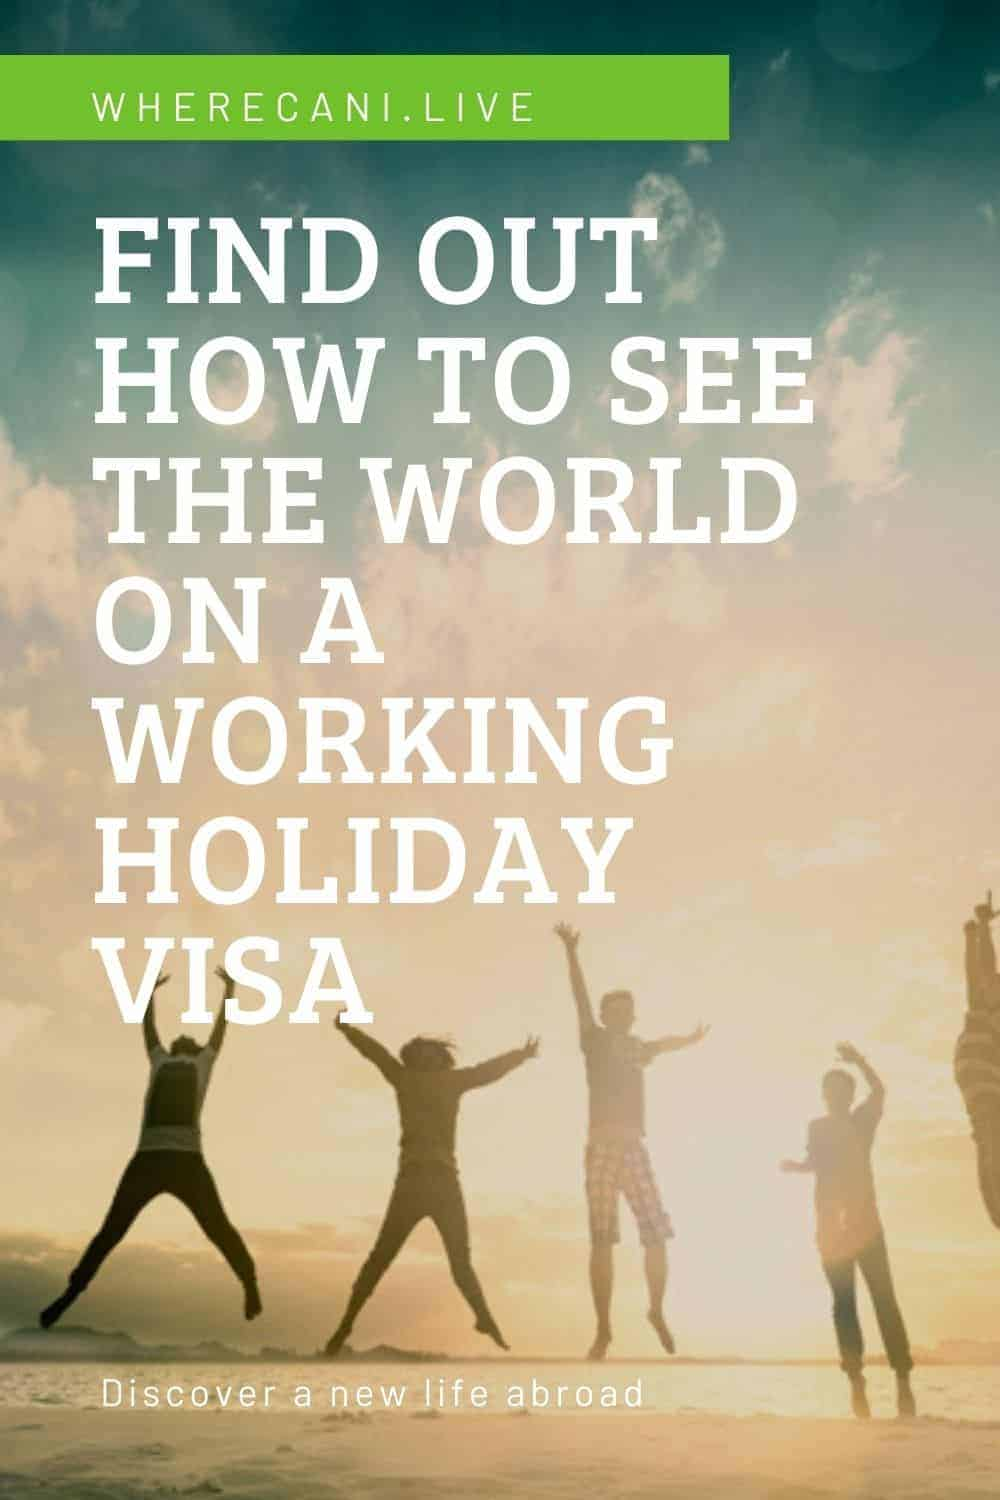 What better way to see the world than to work your way around it?  Find out how to get a working holiday visa. #workingholiday #visa #expat #travel #global #world #expatlife via @wherecanilive